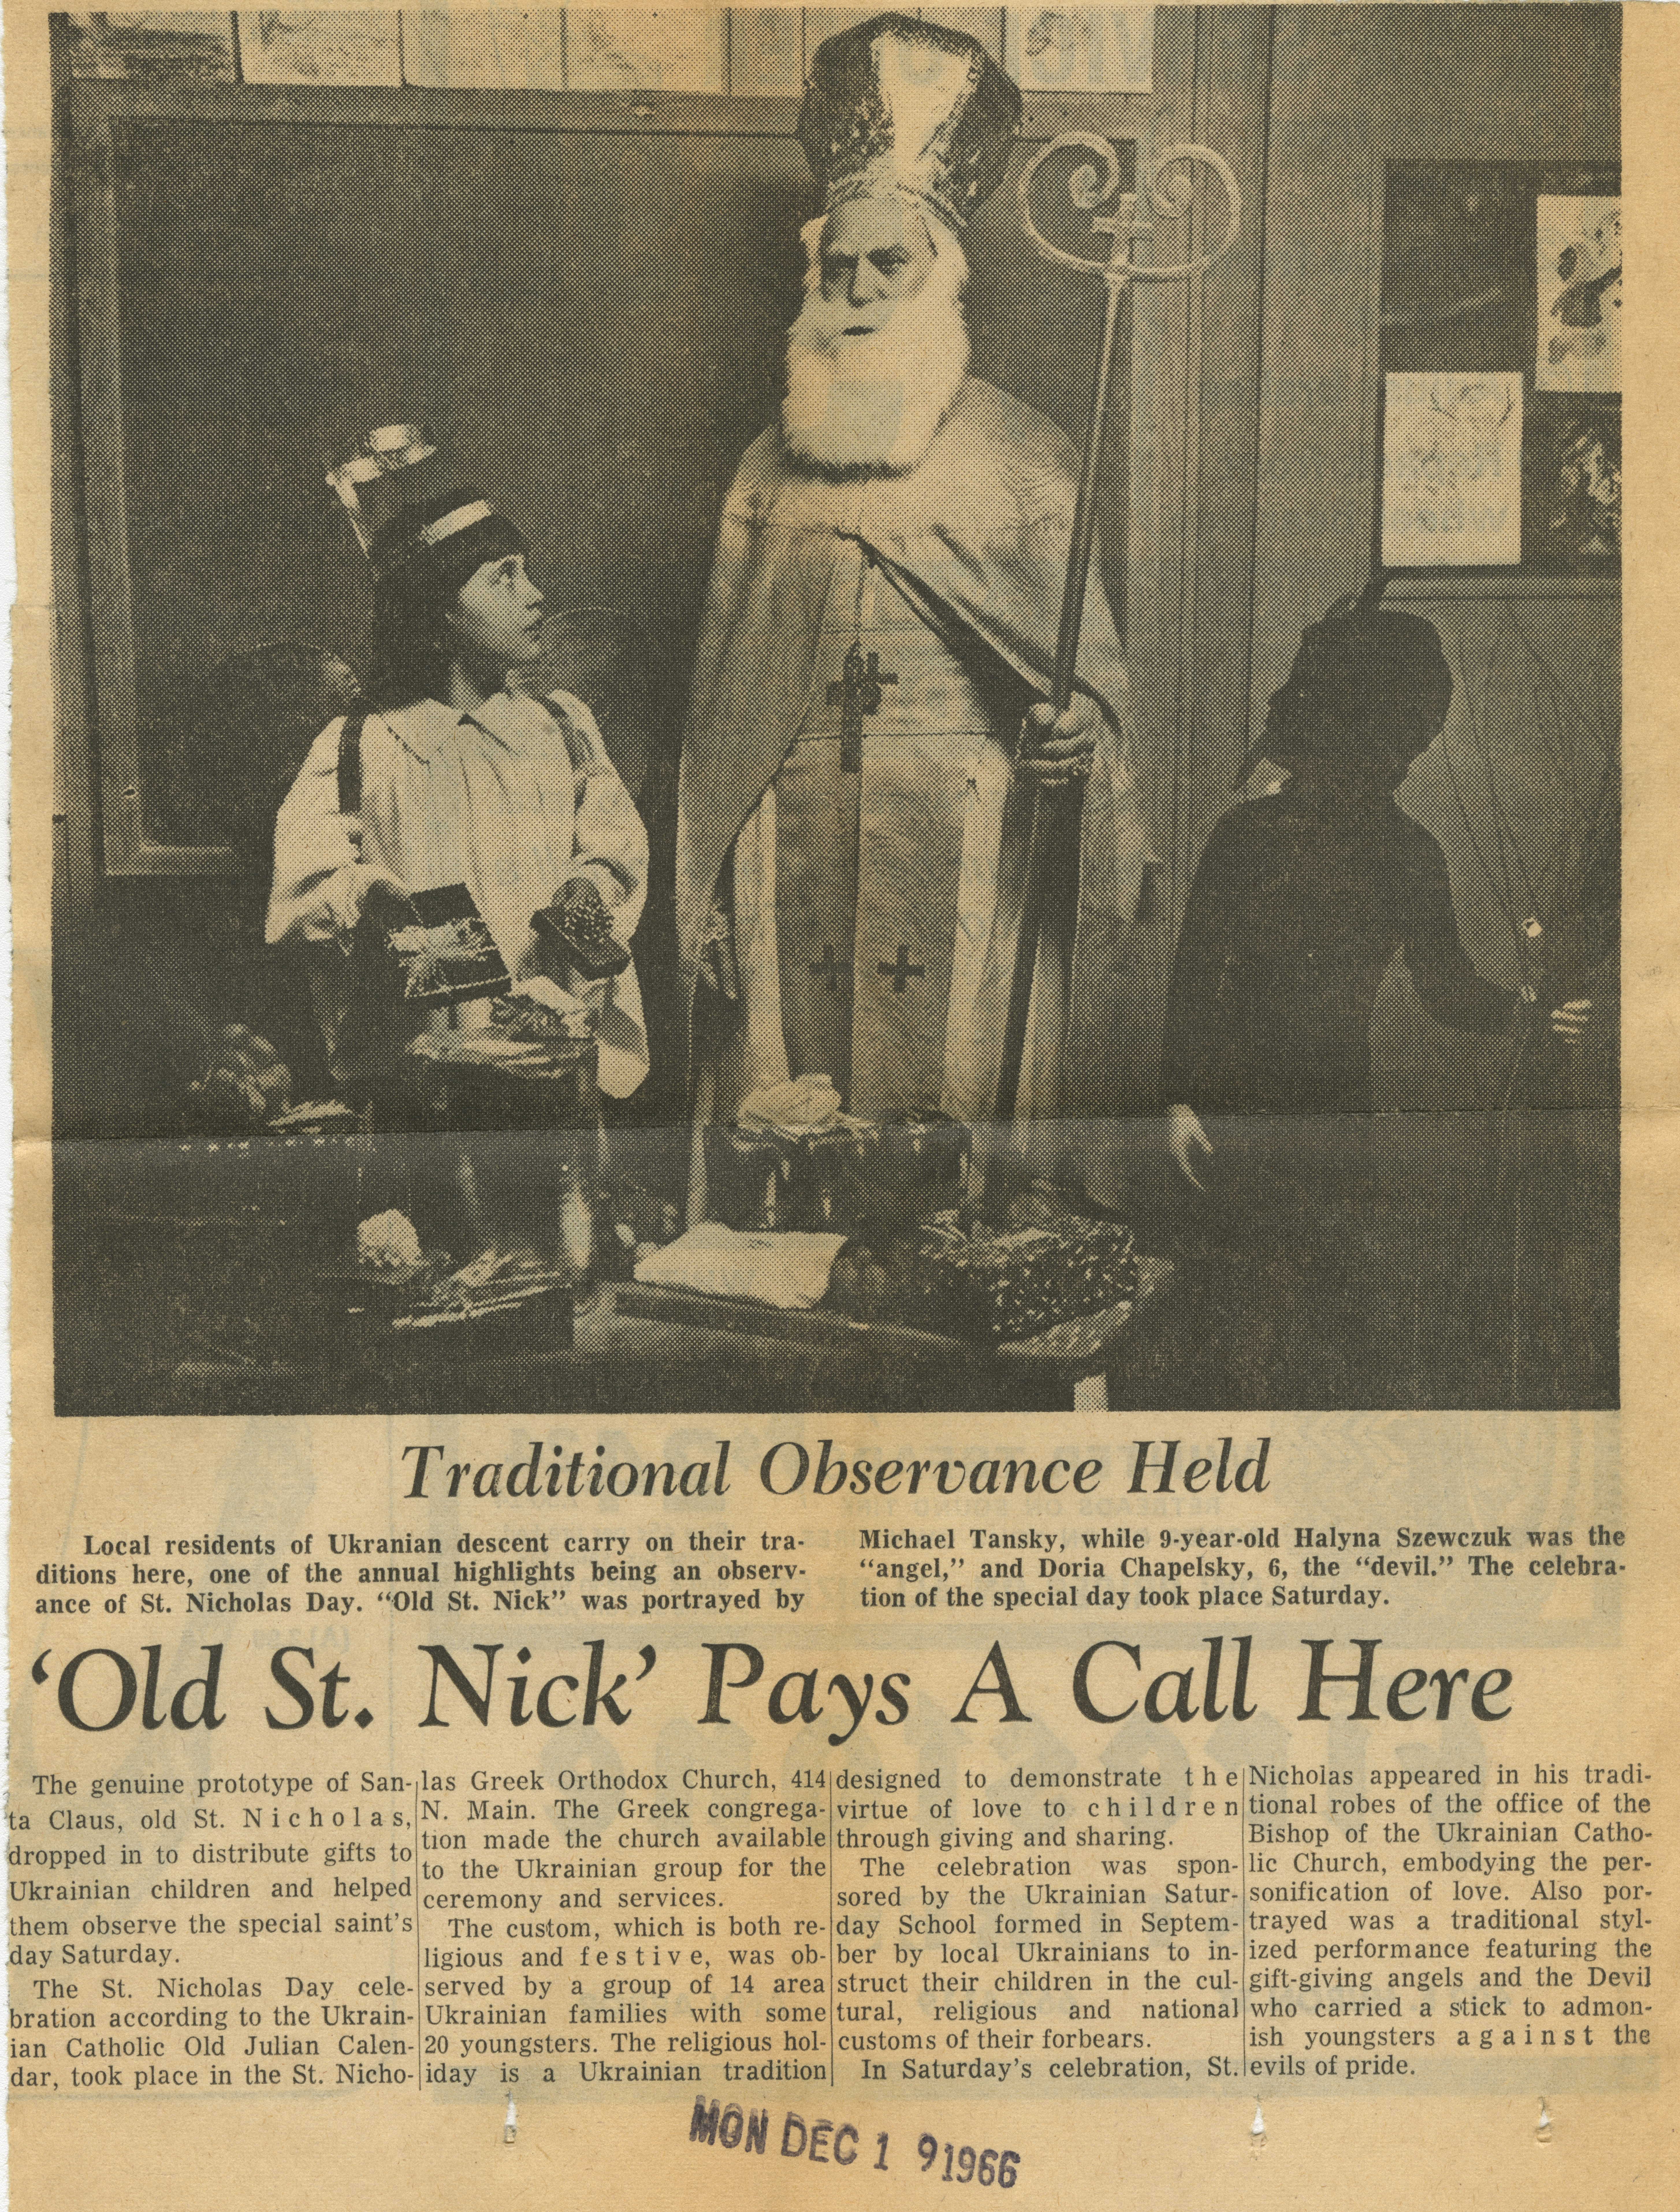 'Old St. Nick' Pays A Call Here image